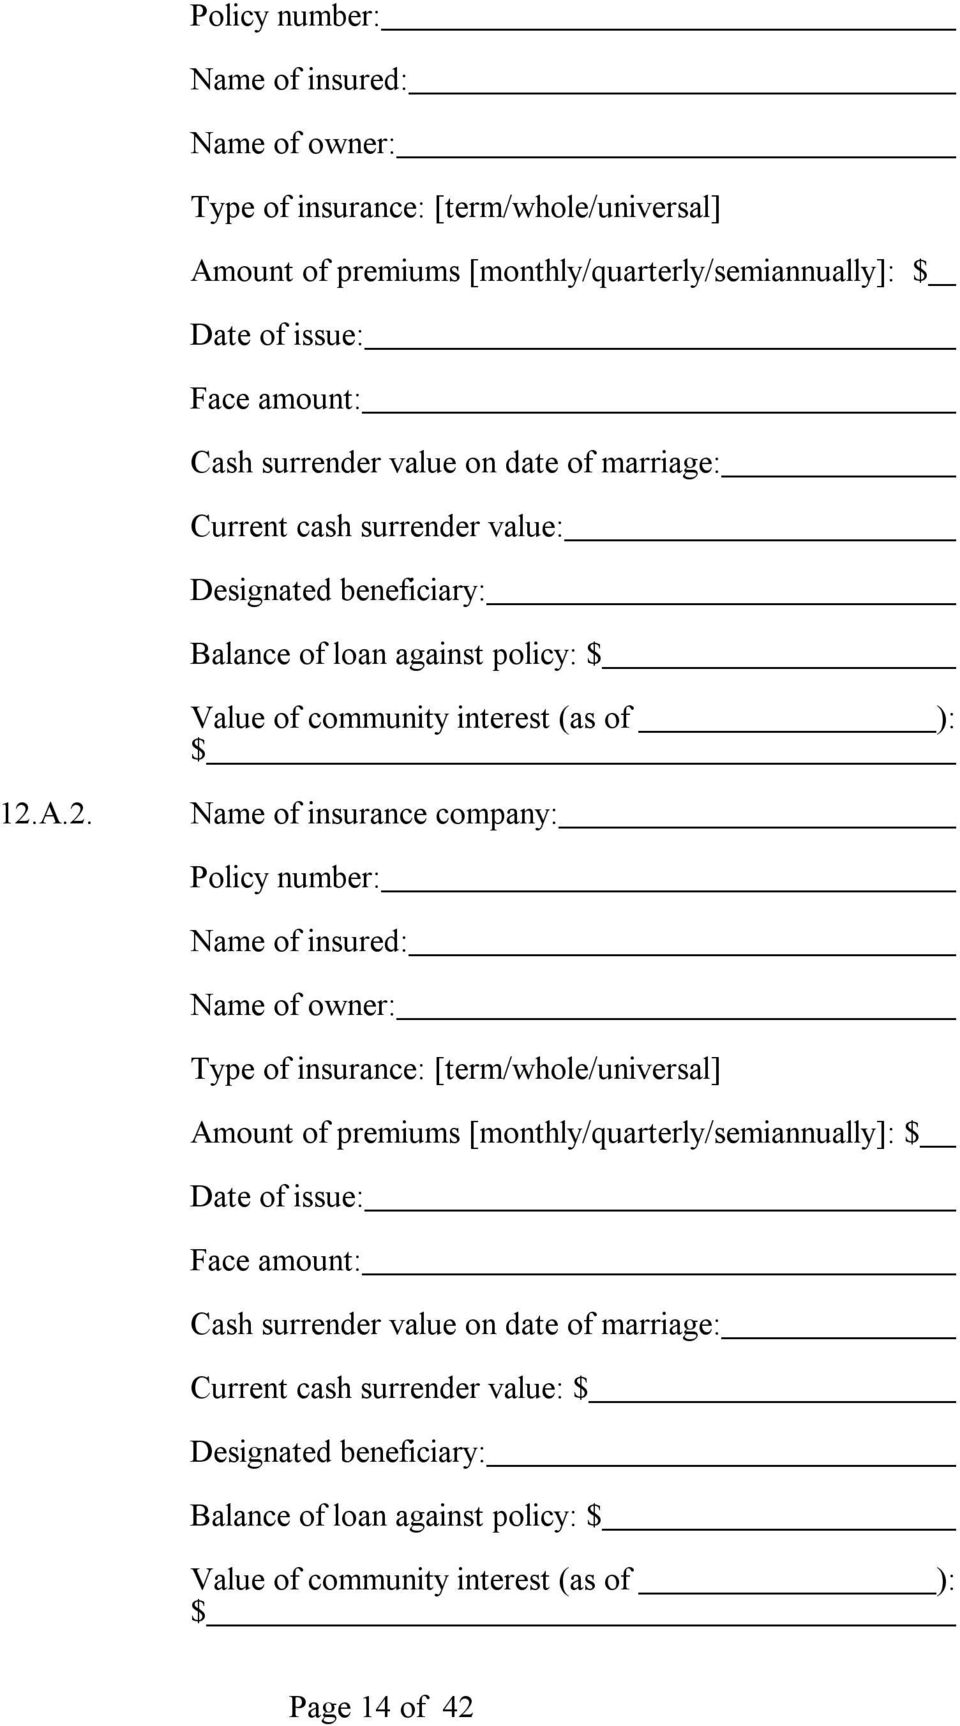 A.2. Name of insurance company:  surrender value on date of marriage: Current cash surrender value: Designated beneficiary: Balance of loan against policy: Value of community